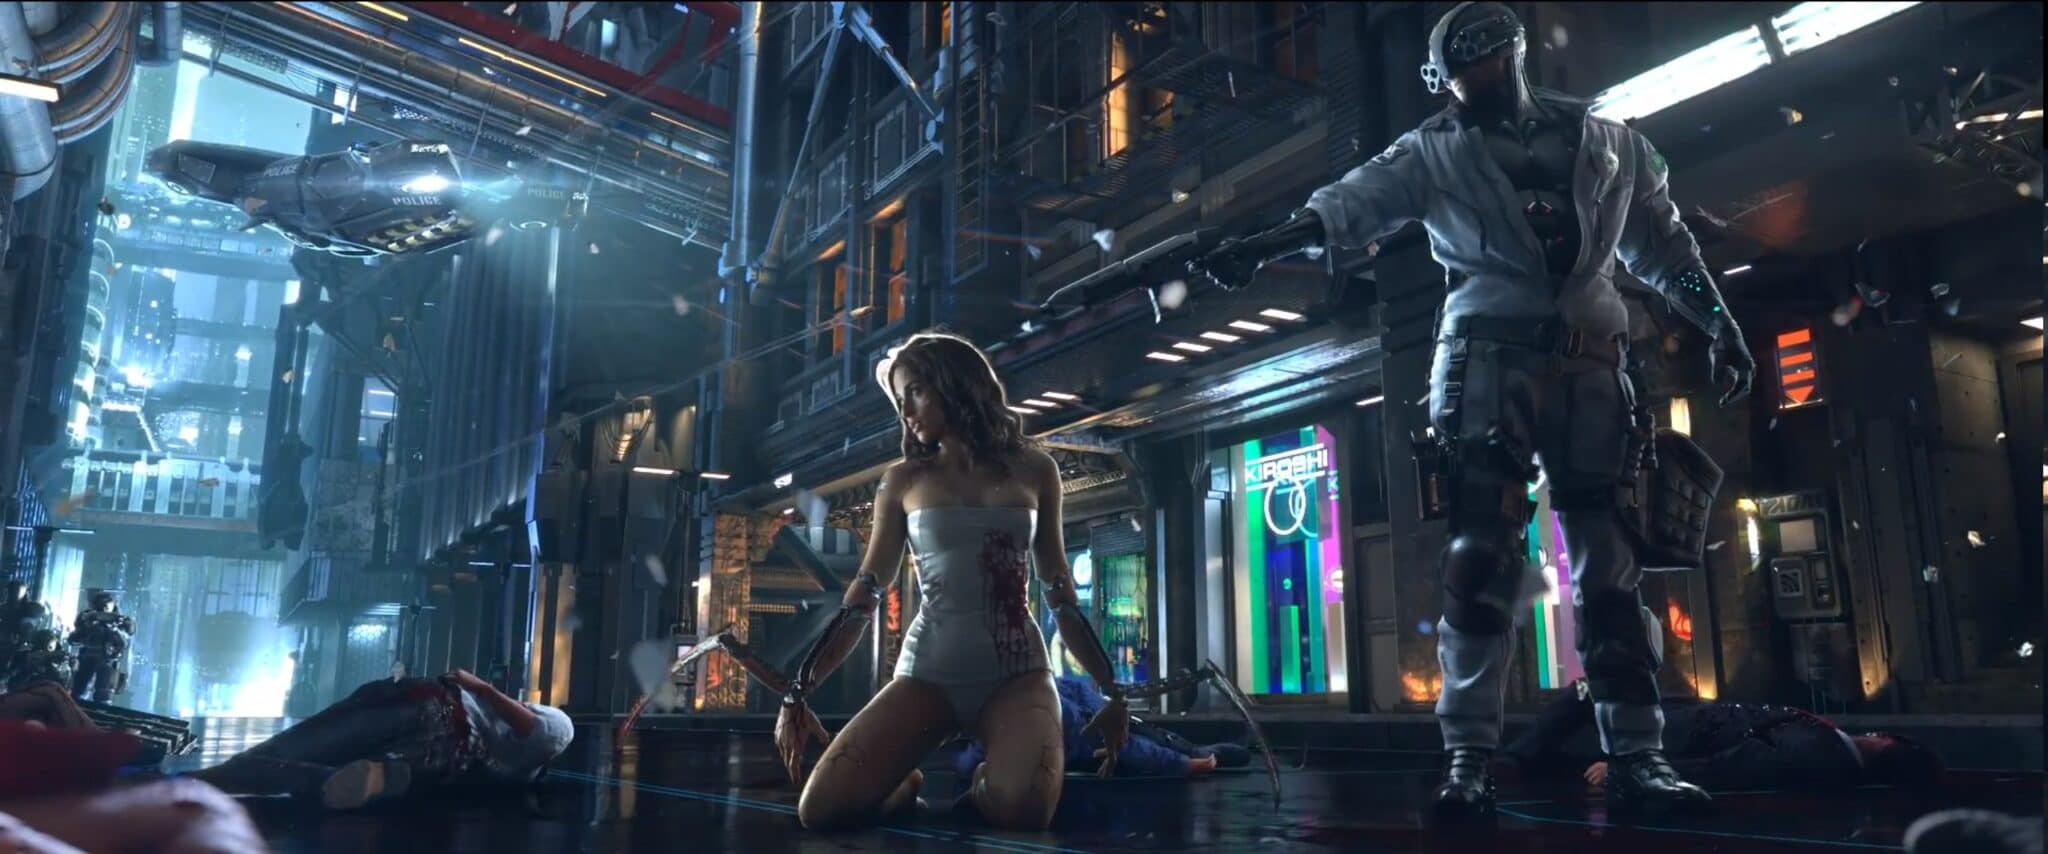 New Update Fixes Seizure Issues Among Other Things In Cyberpunk 2077